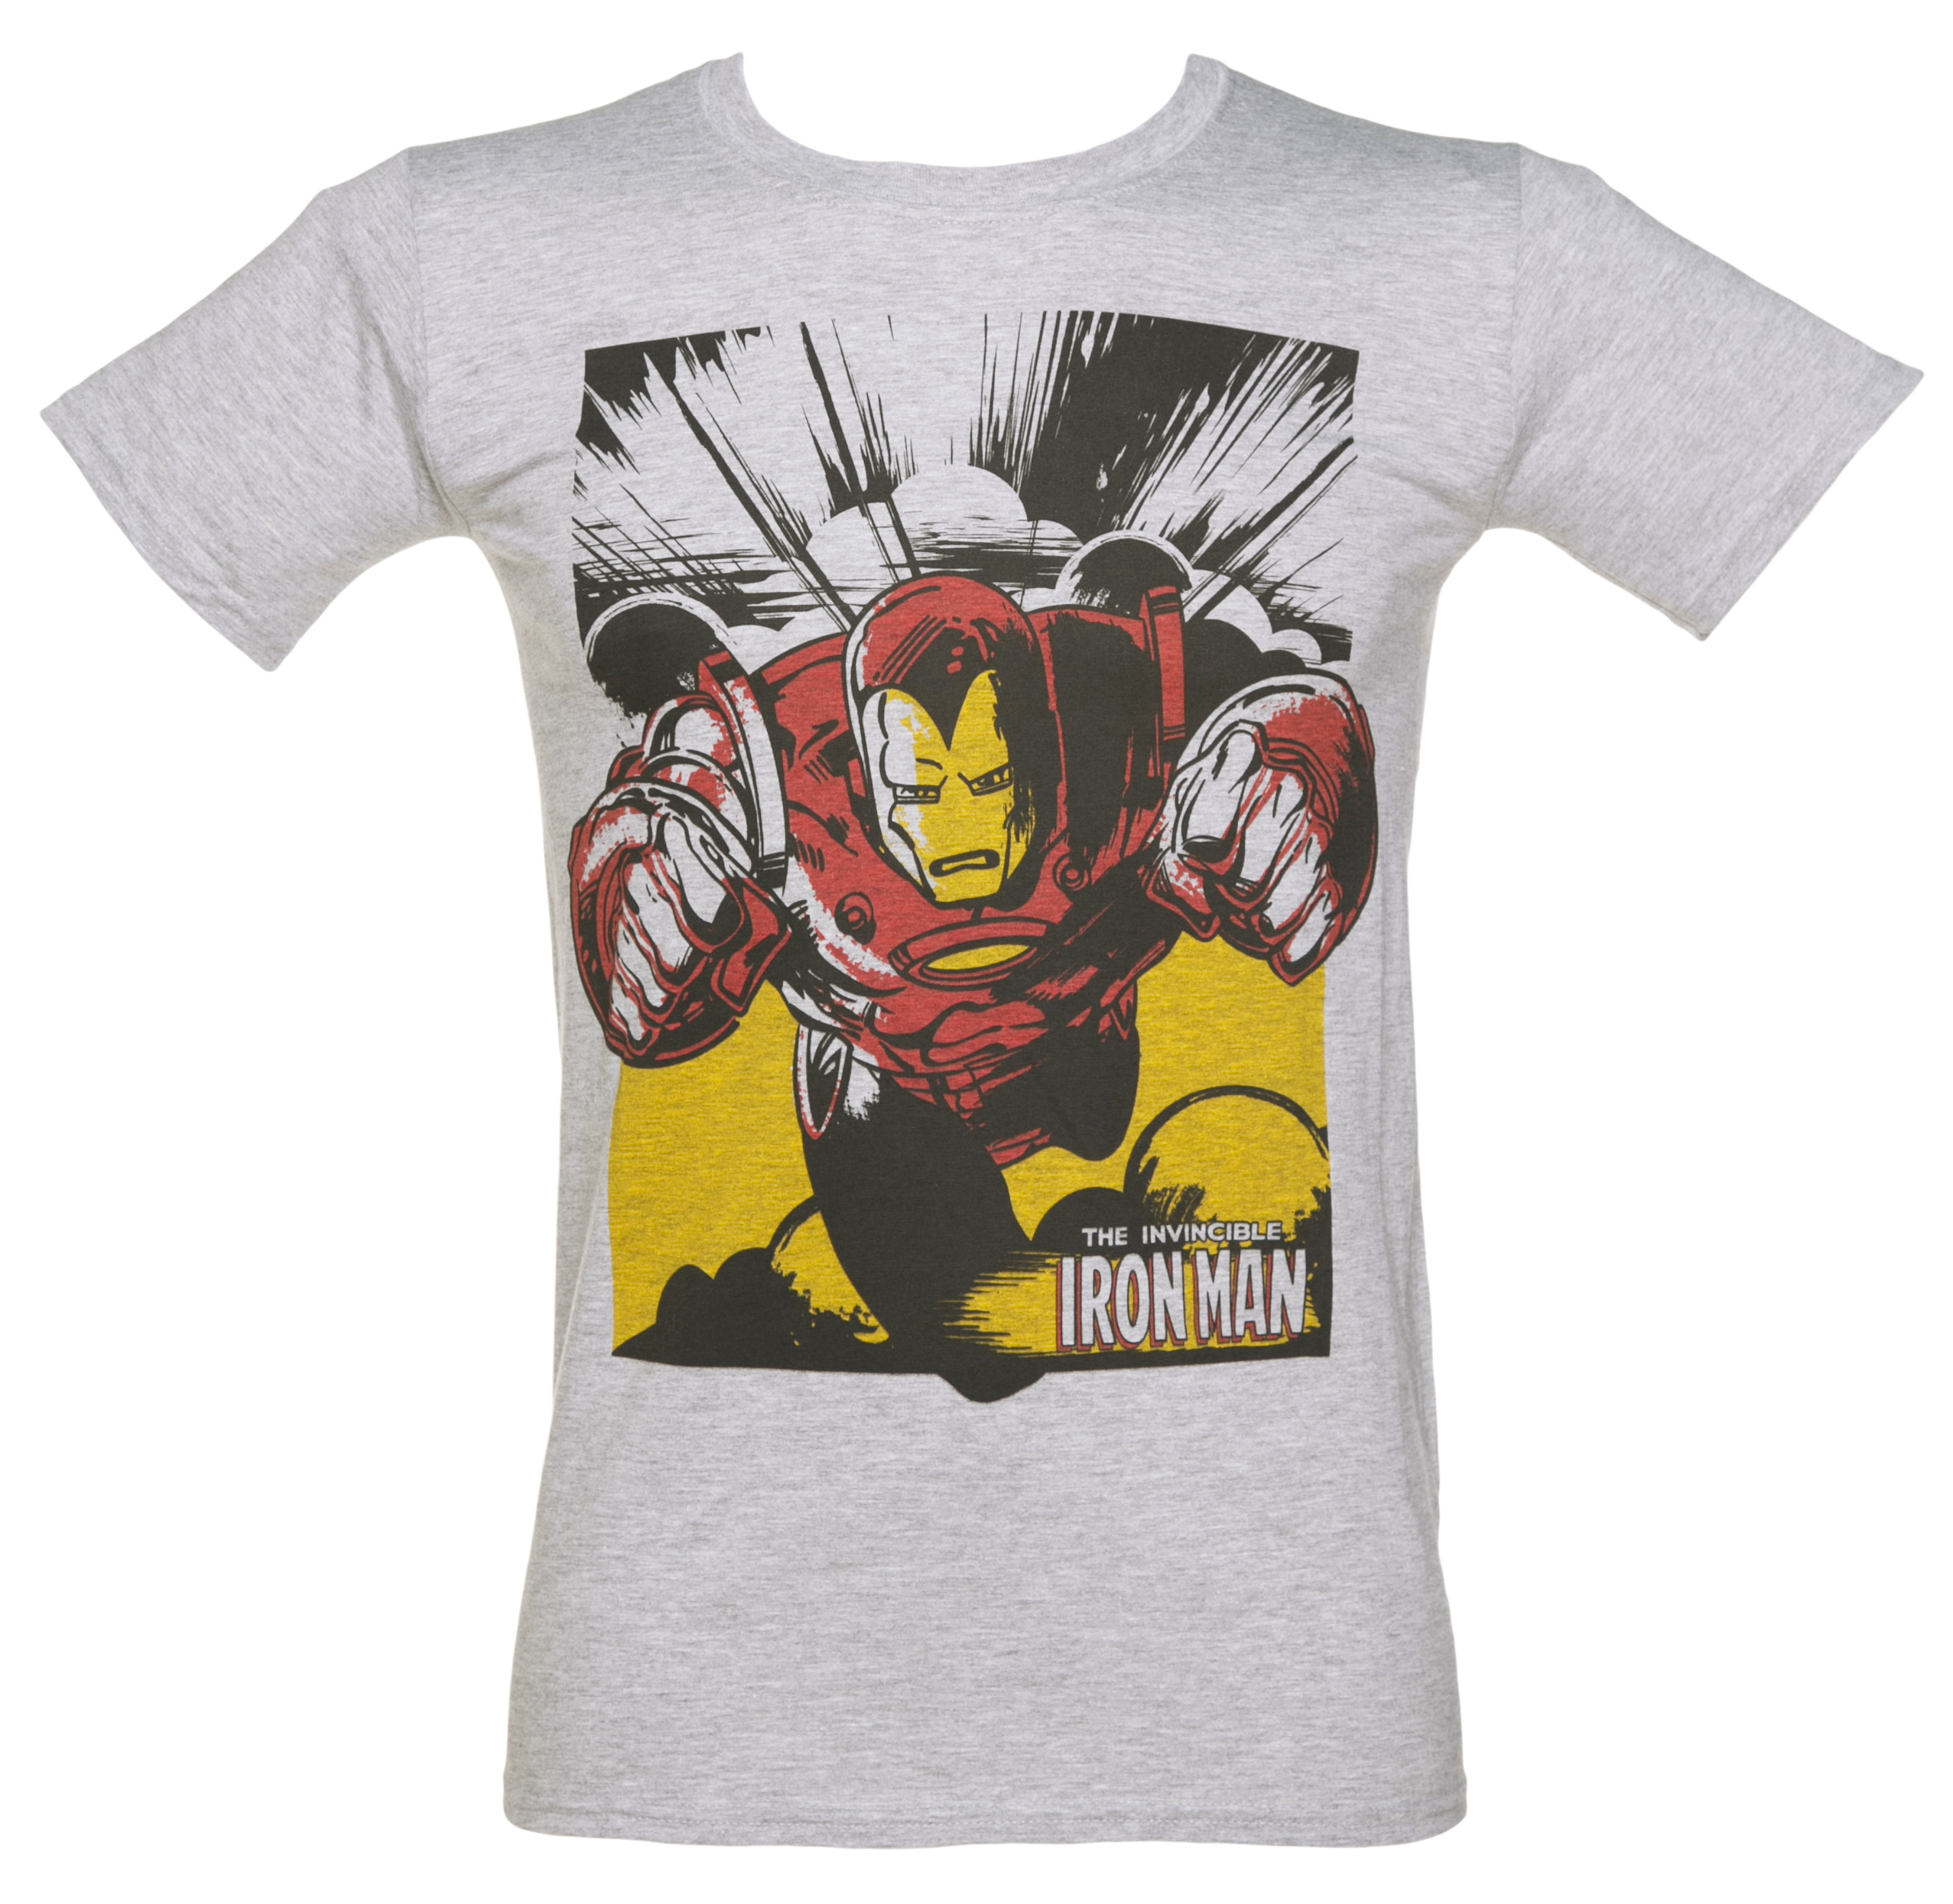 Men's Grey Marl Iron Man Action Marvel T-Shirt